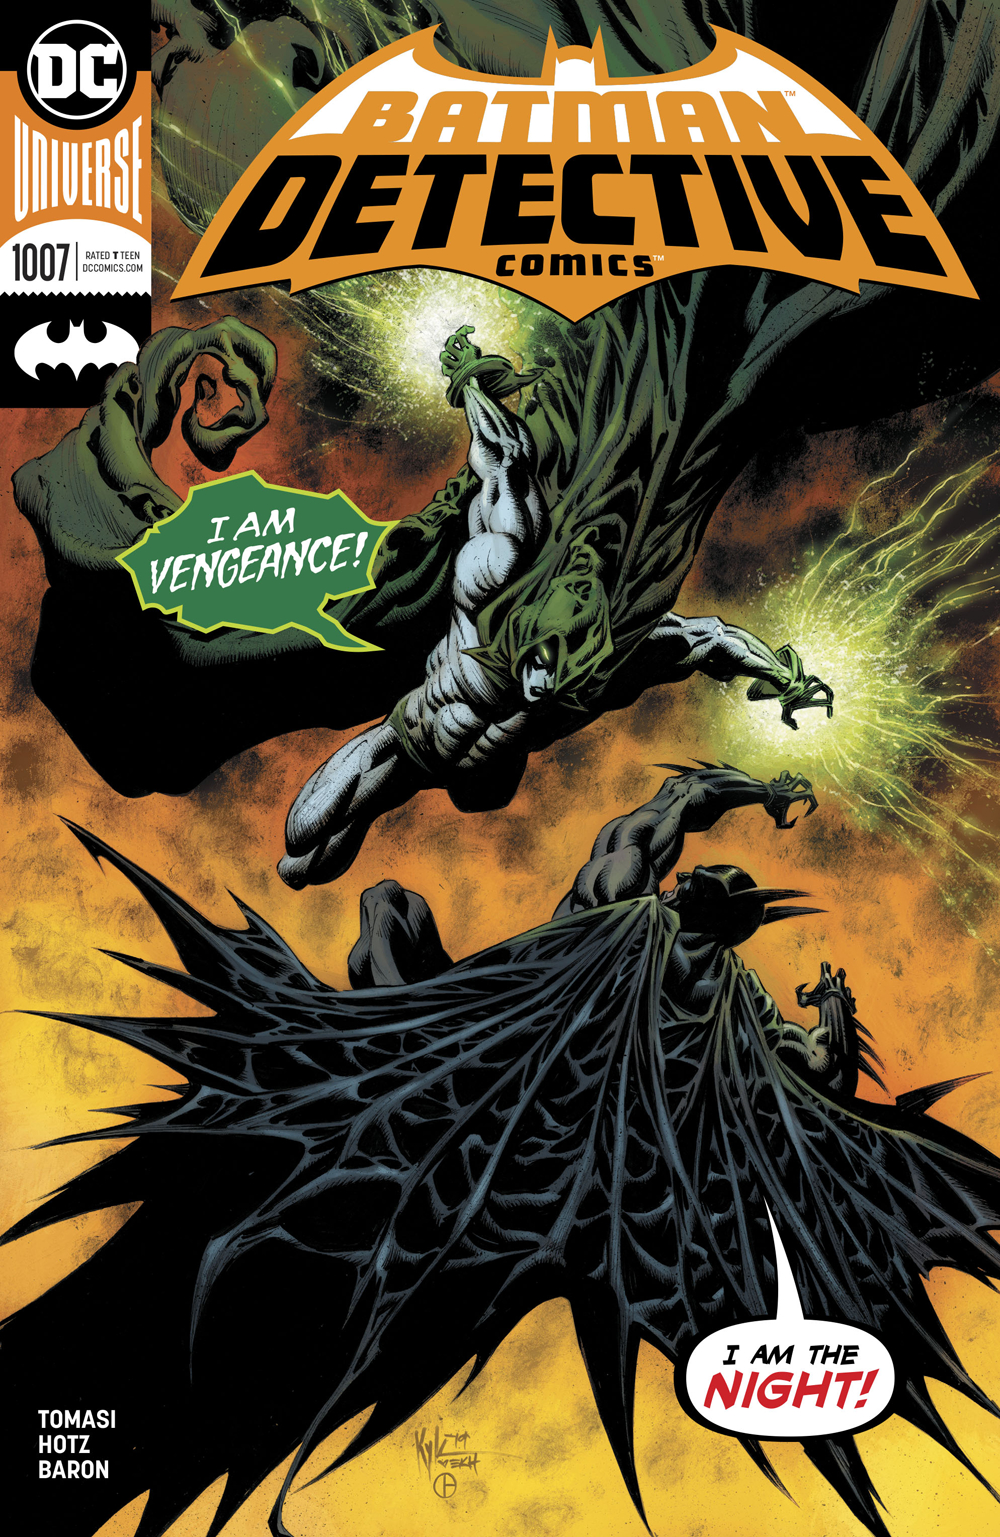 Detective Comics #1007  is out now.